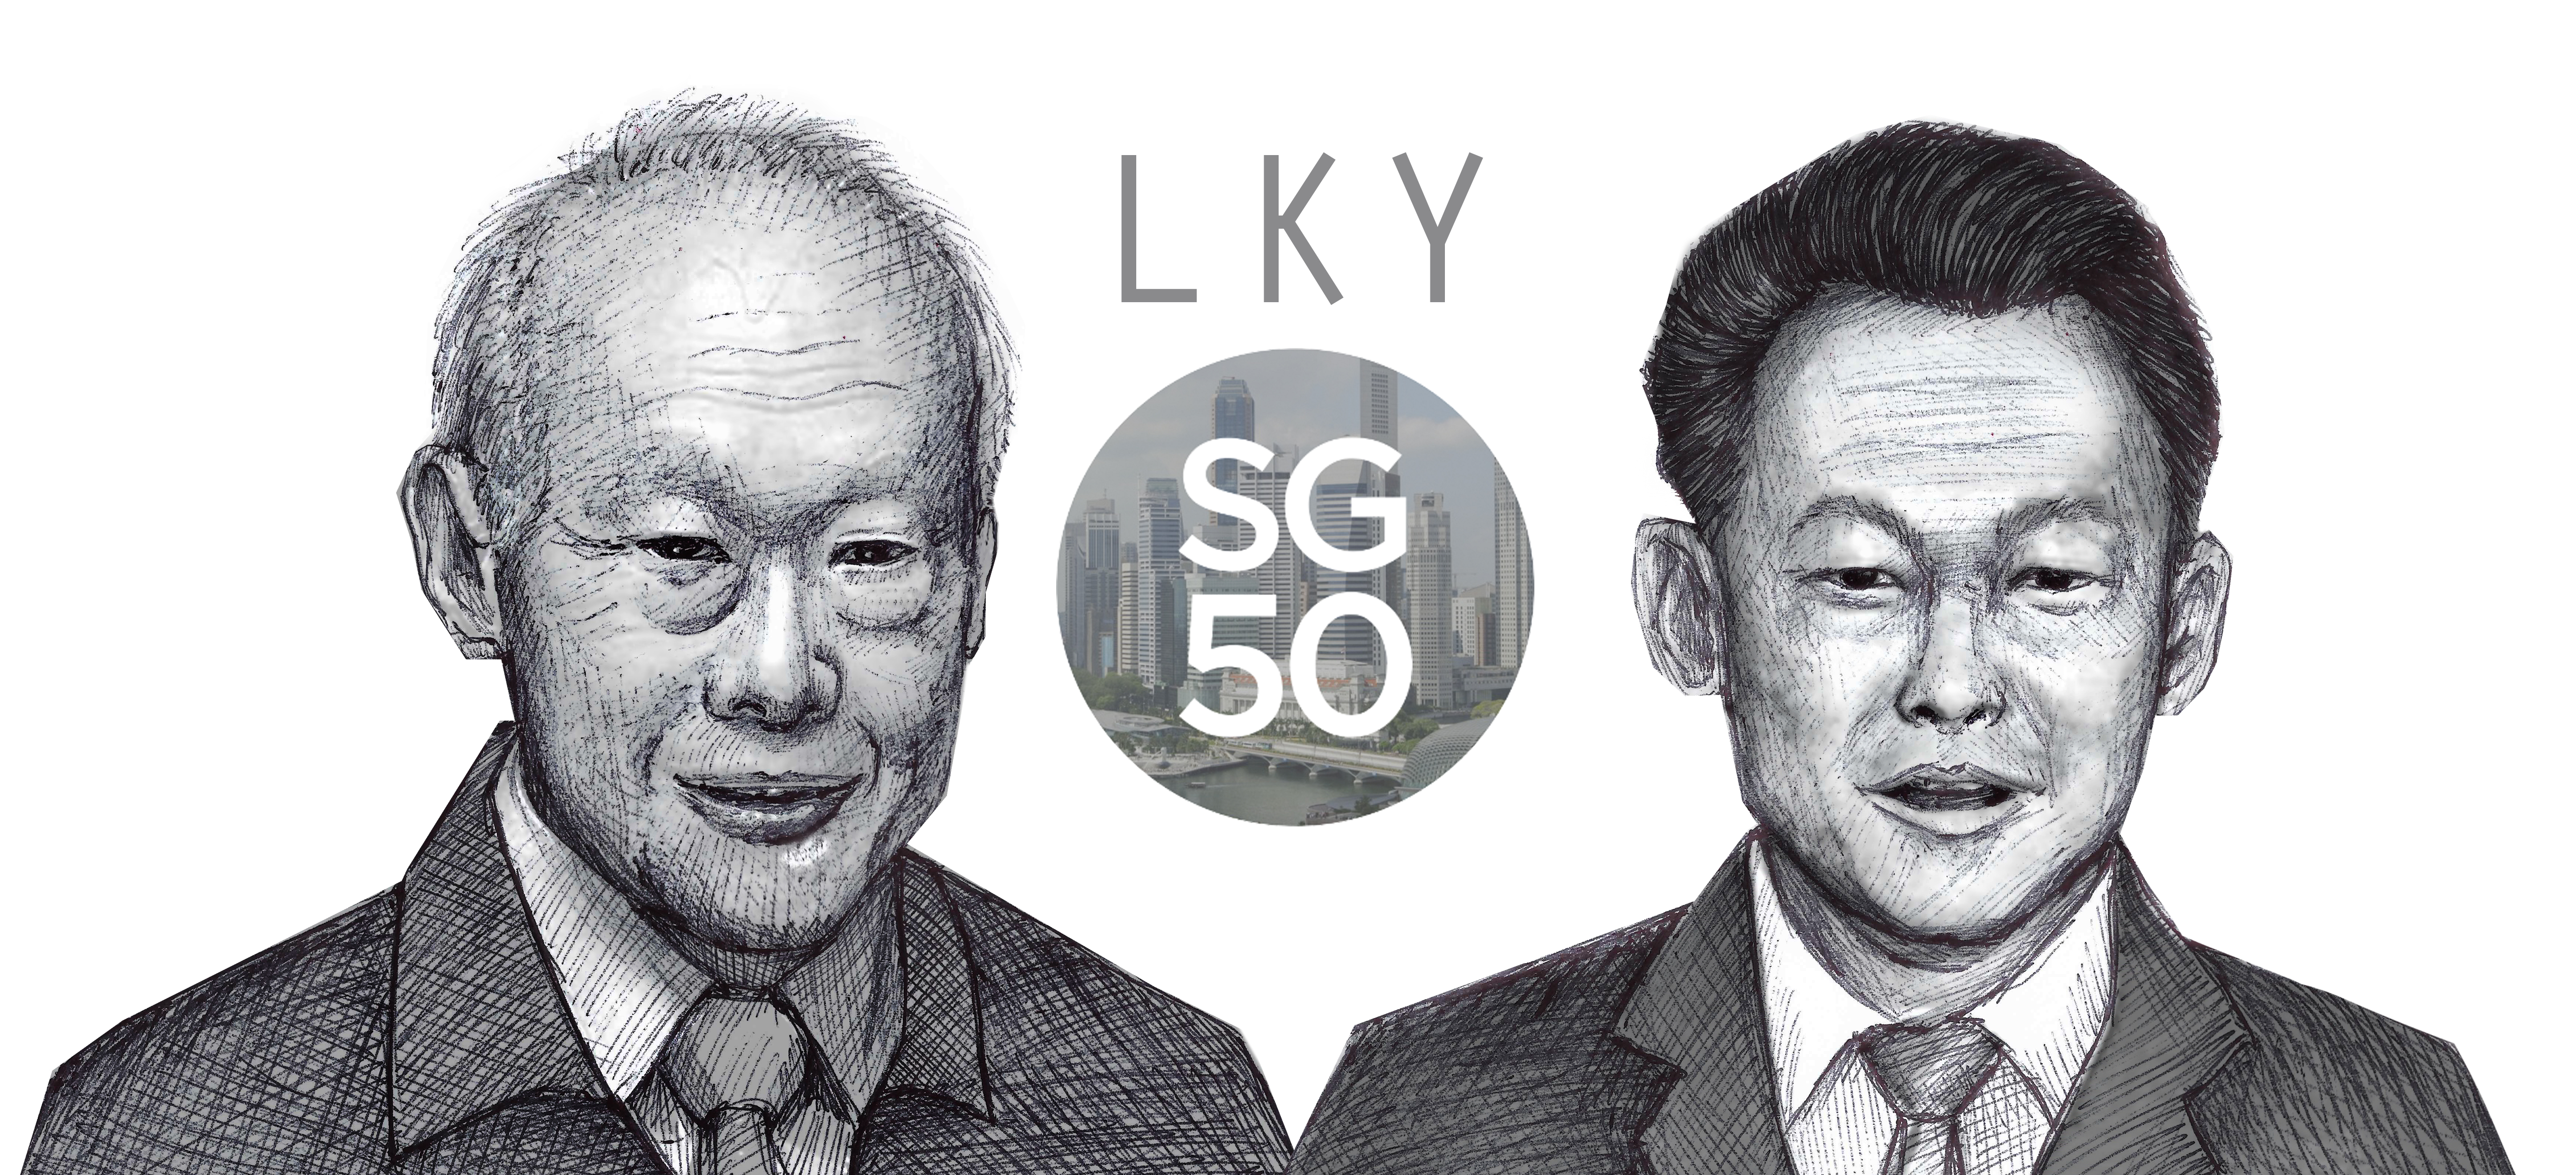 LKY3-SG50-by-JazePhuaductions.jpg